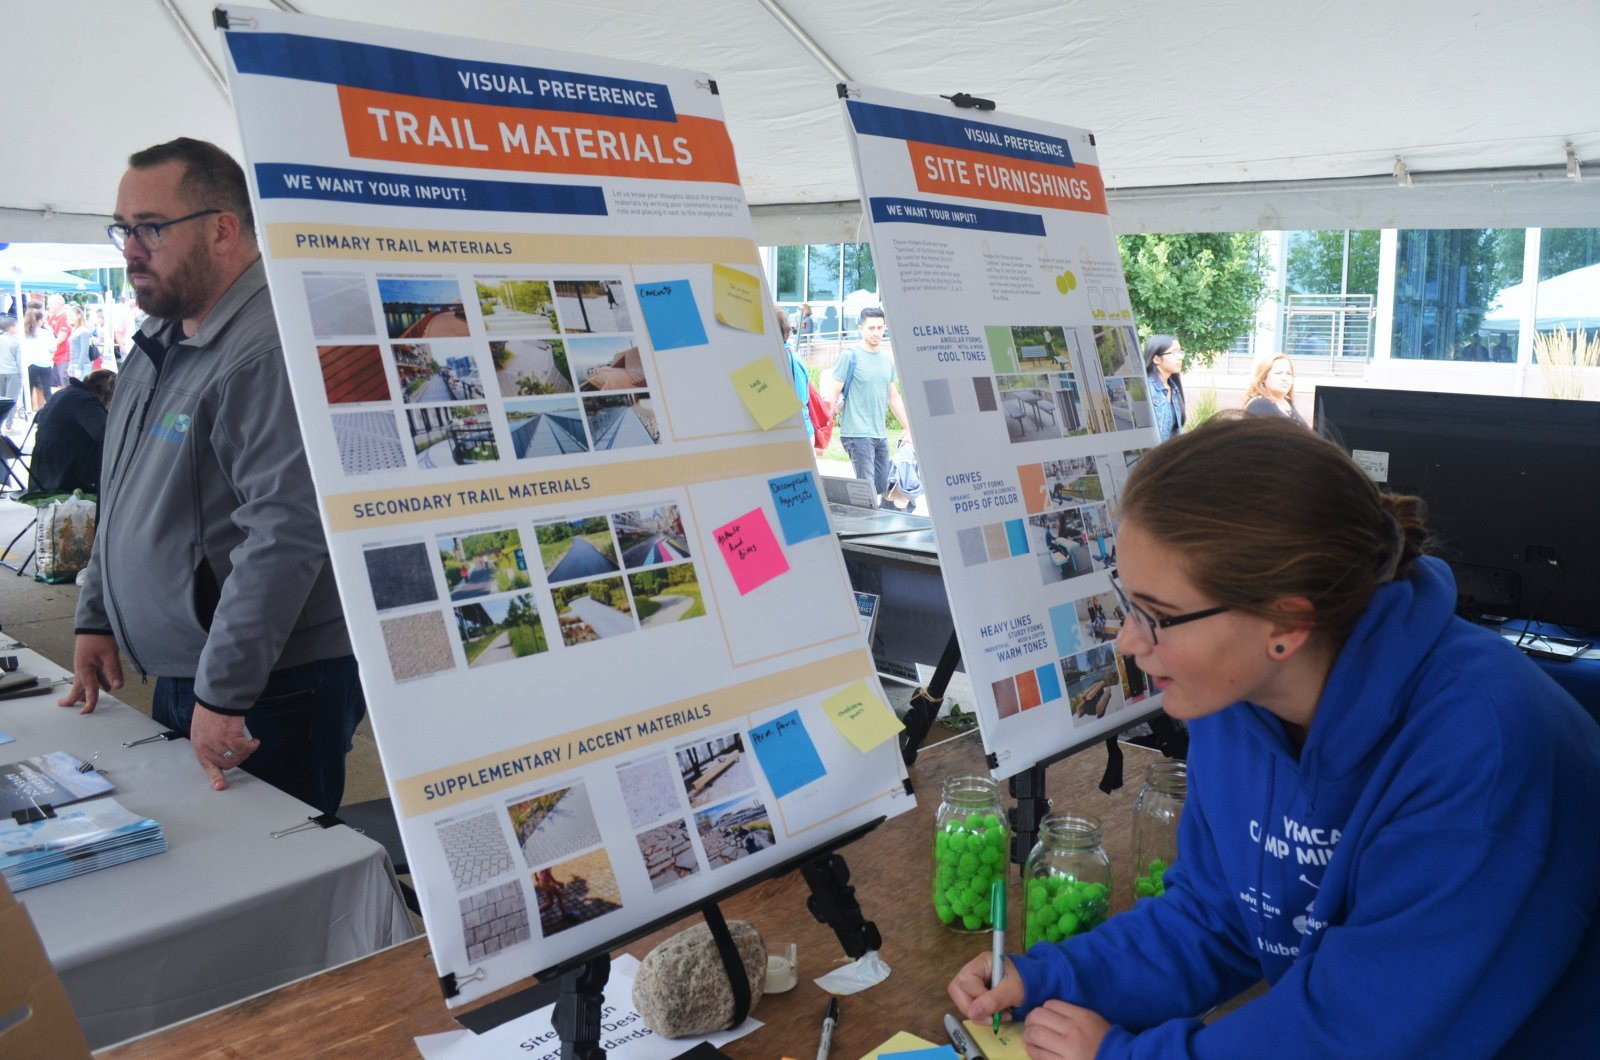 Guests leave comments on the planned riverwalk for the Harbor District